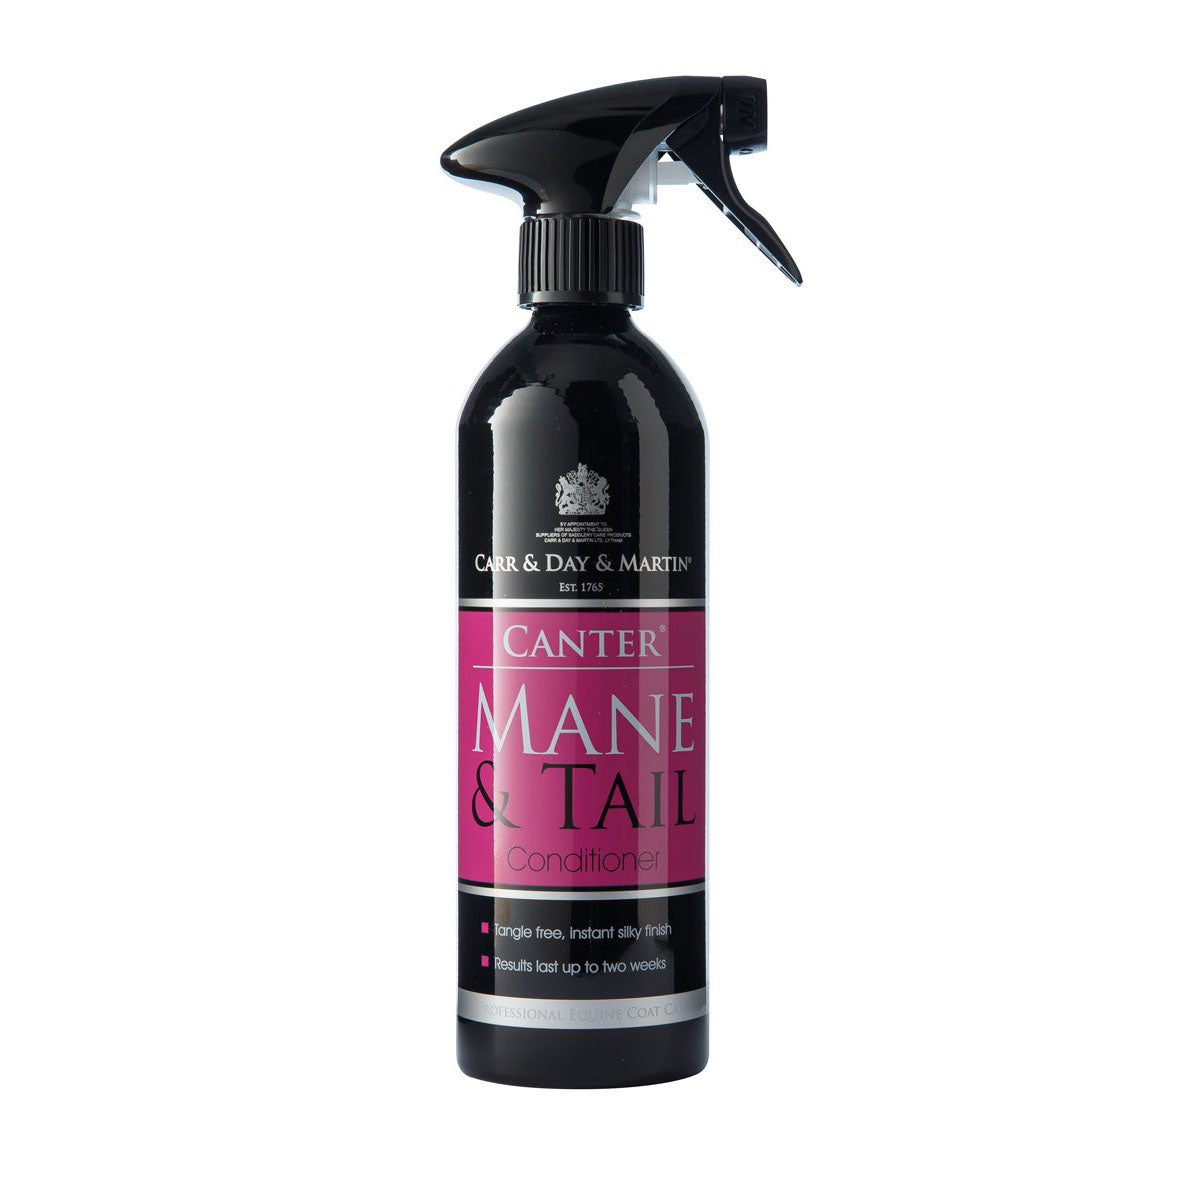 Carr & Day & Martin Canter Mane & Tail Conditioning Spray